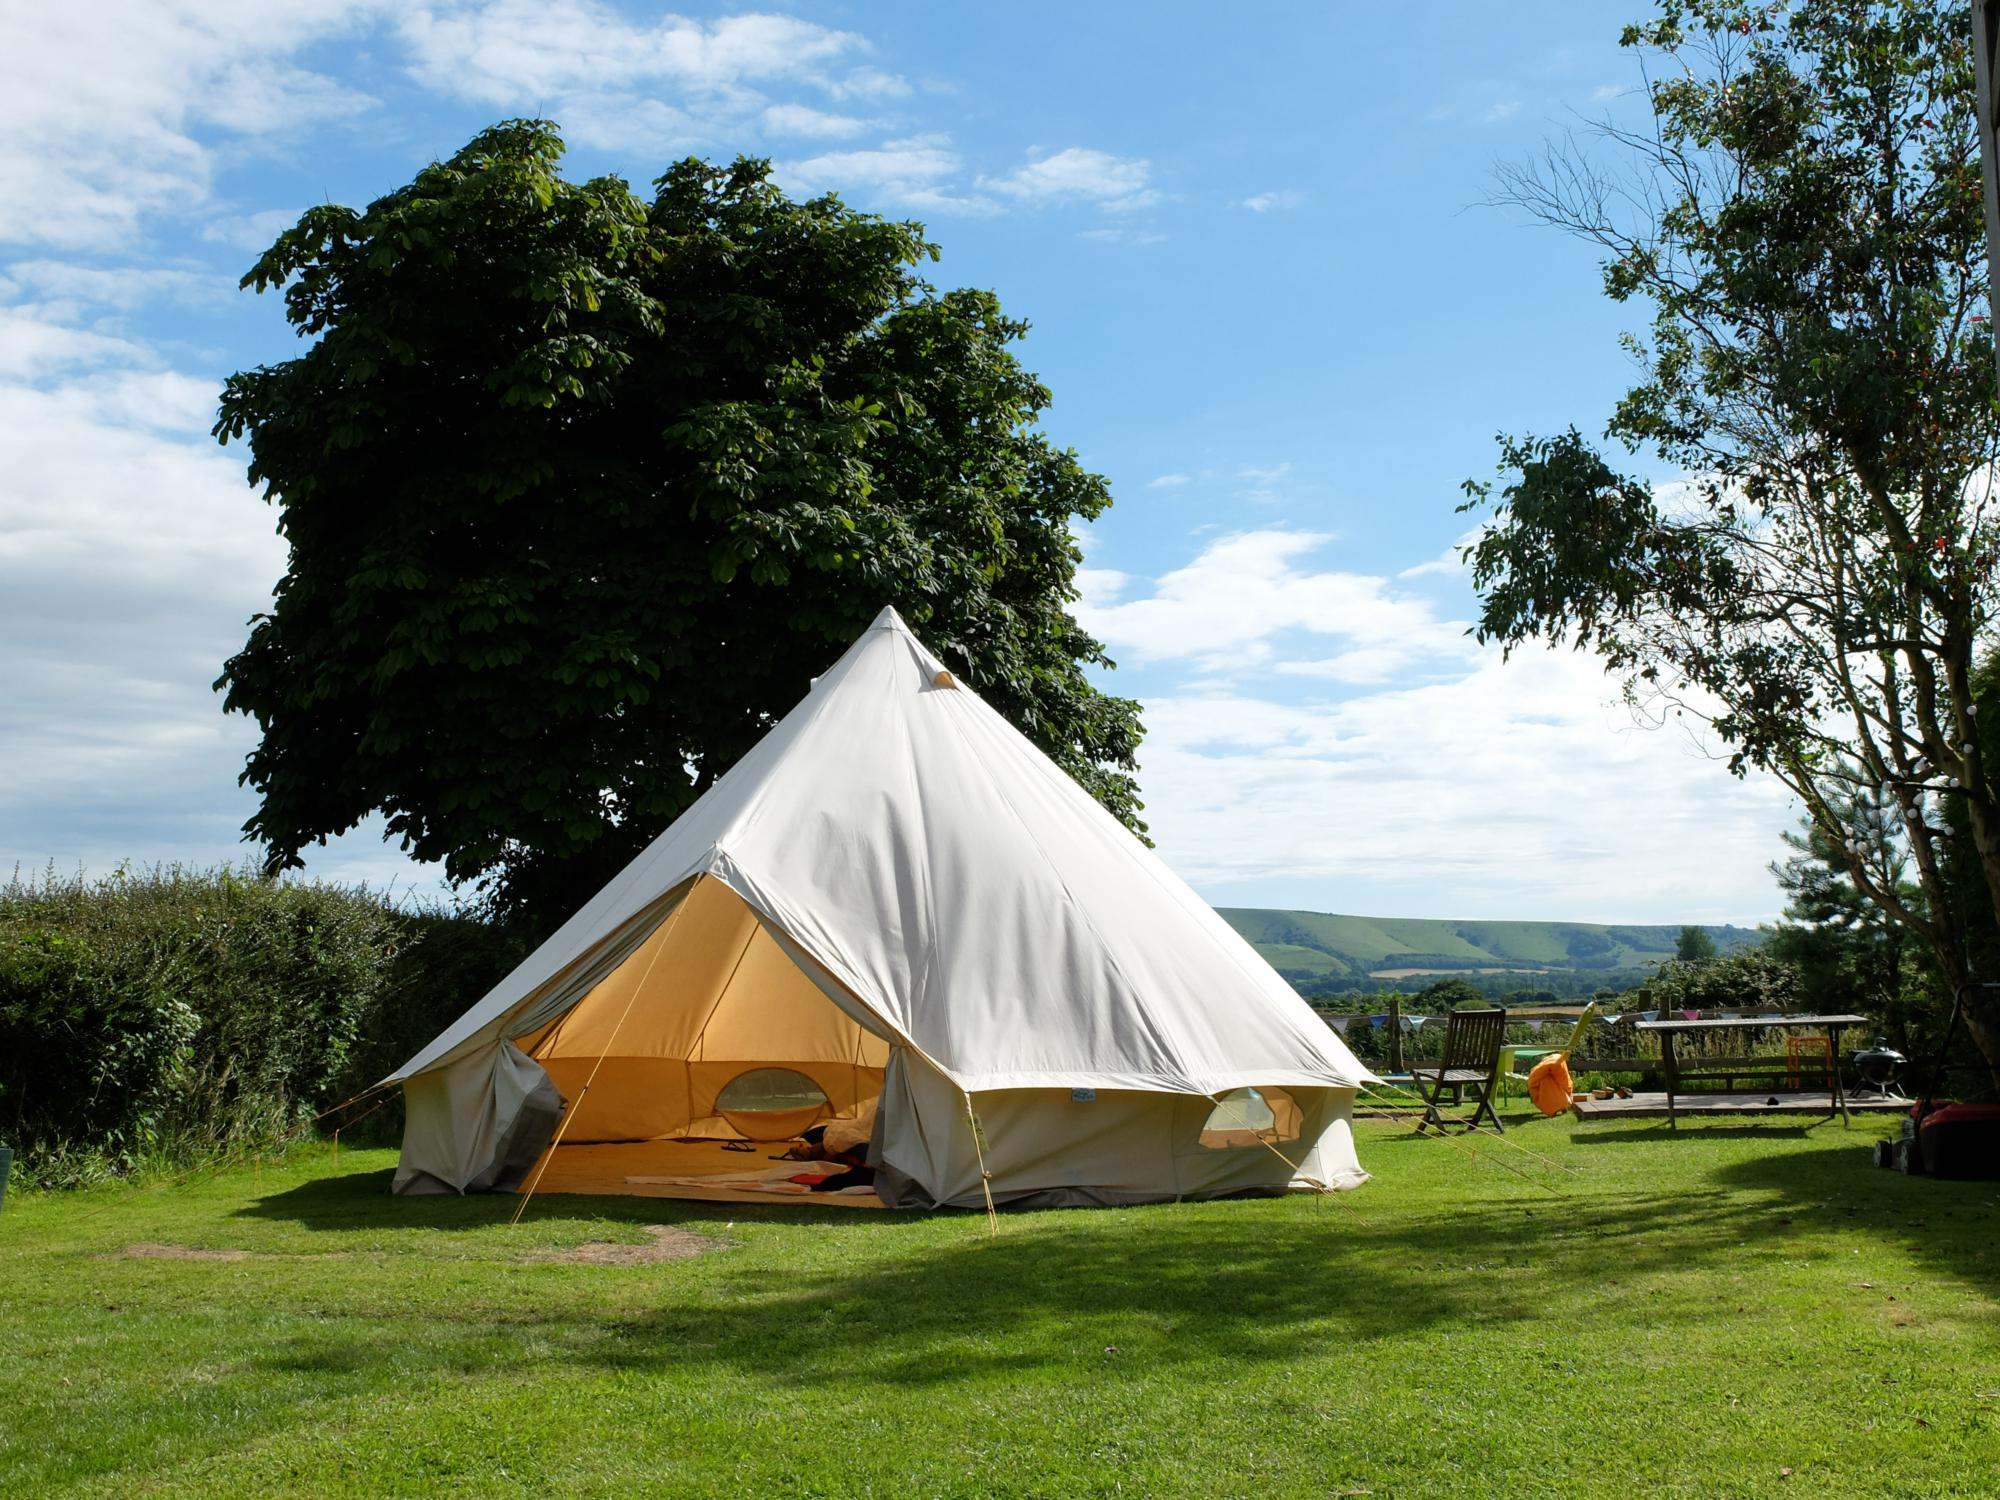 Glamping in England holidays at I Love This Campsite